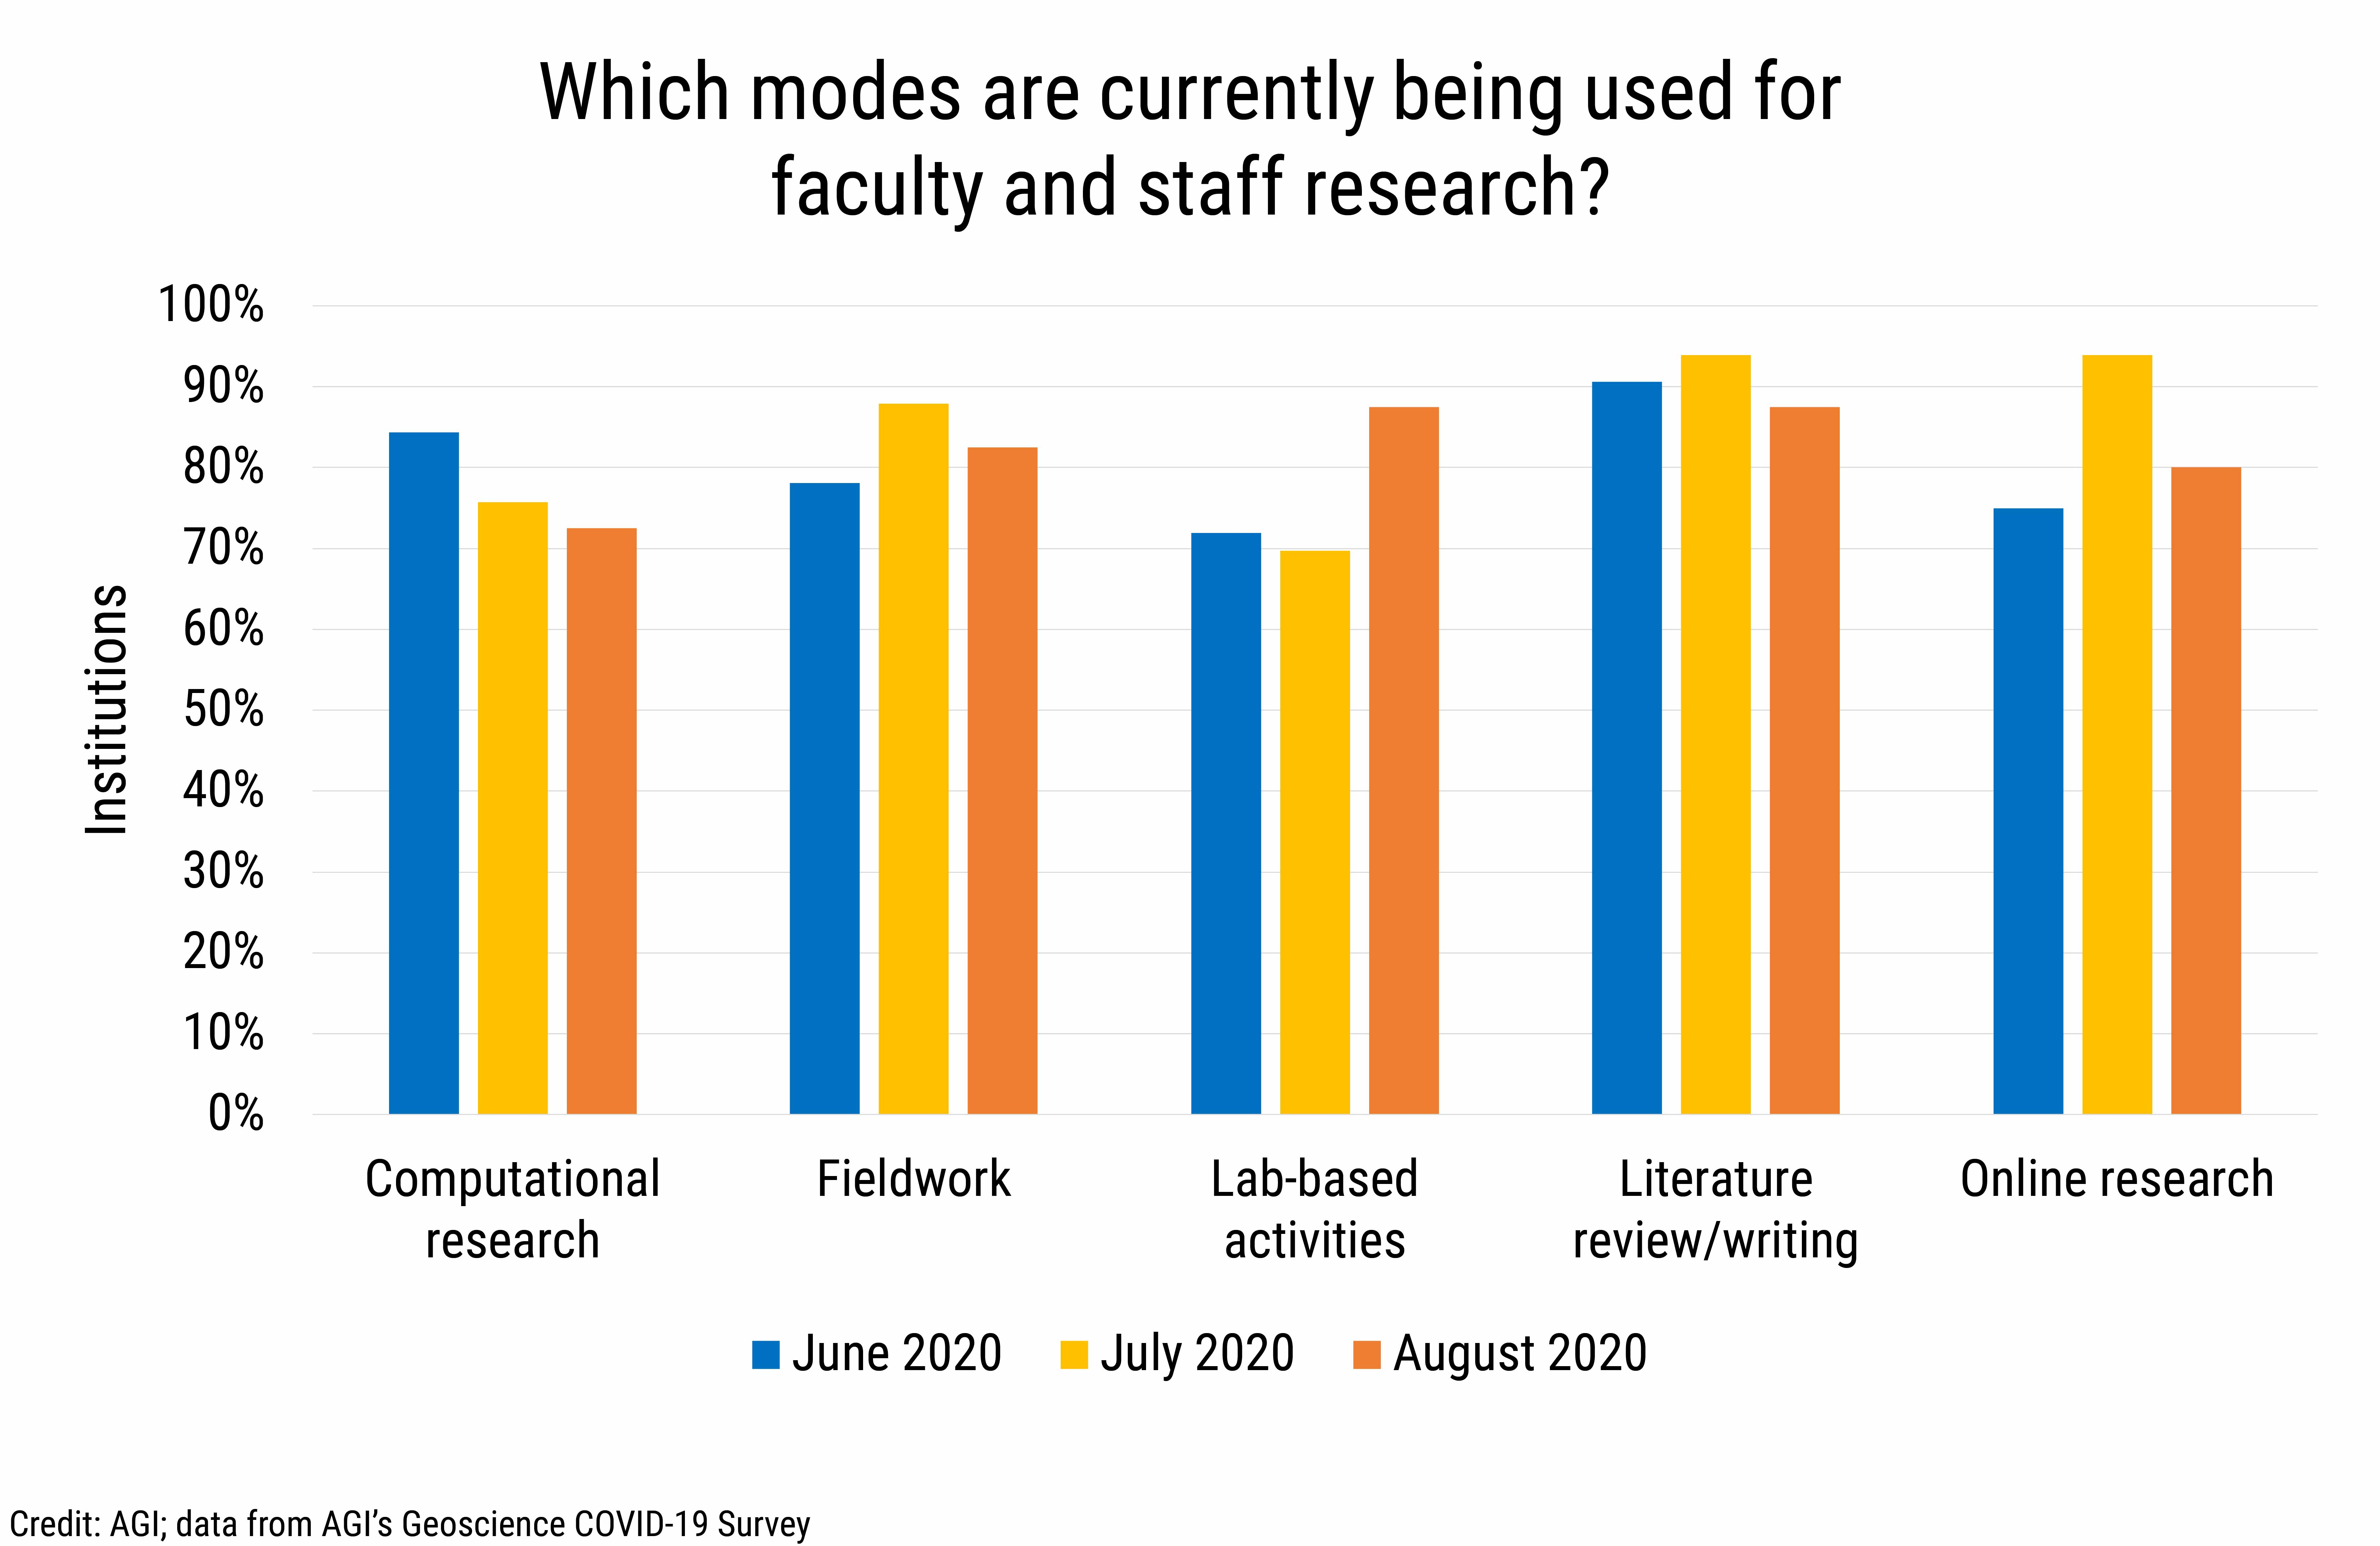 DB2020-021: chart 04:Faculty and Staff Research Modes (Credit: AGI; data from AGI's Geoscience COVID-19 Survey)